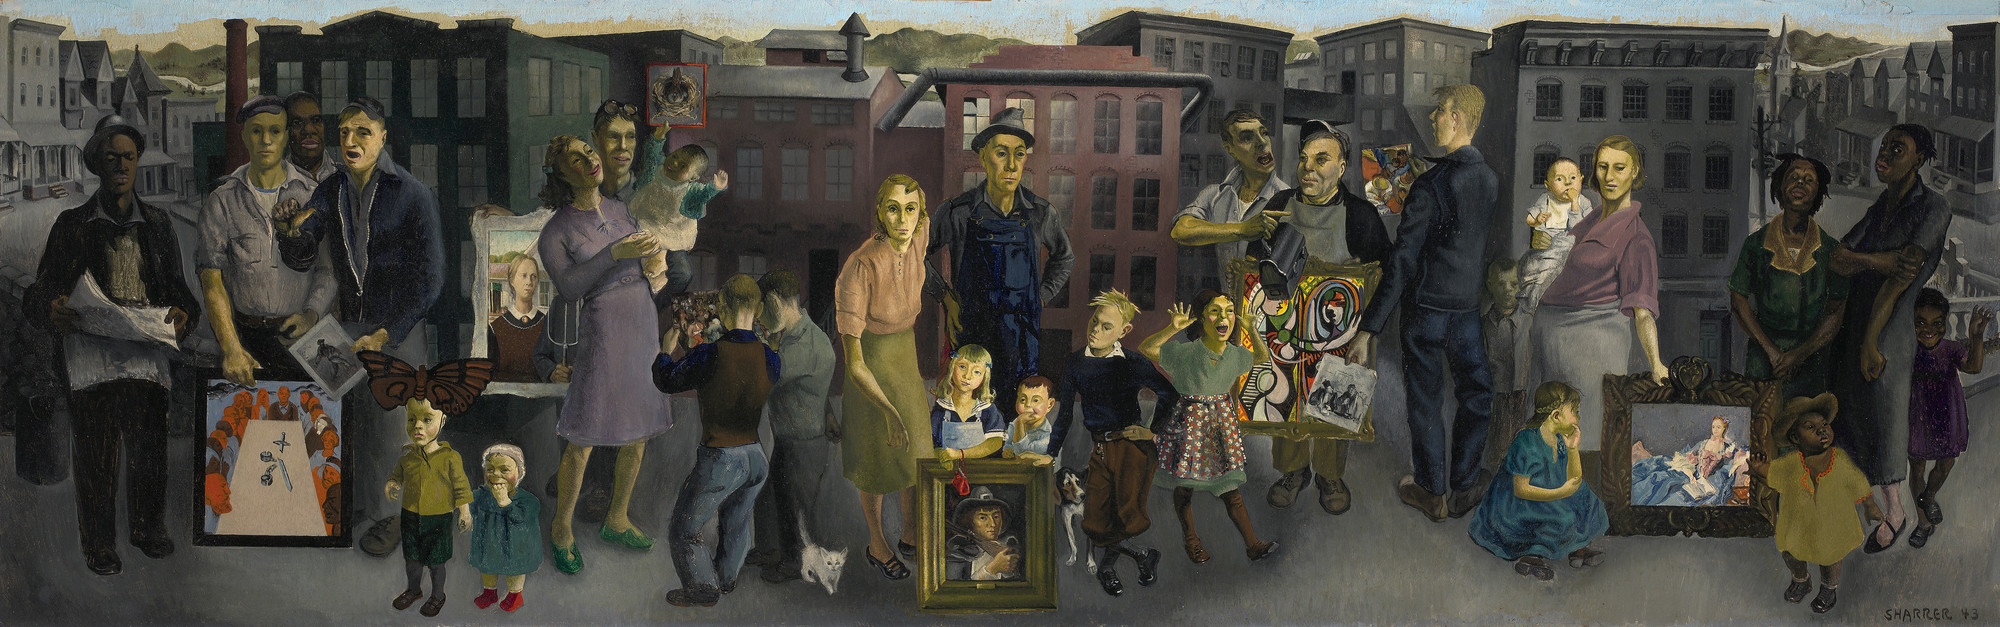 Honoré Sharrer. Workers and Paintings. 1943